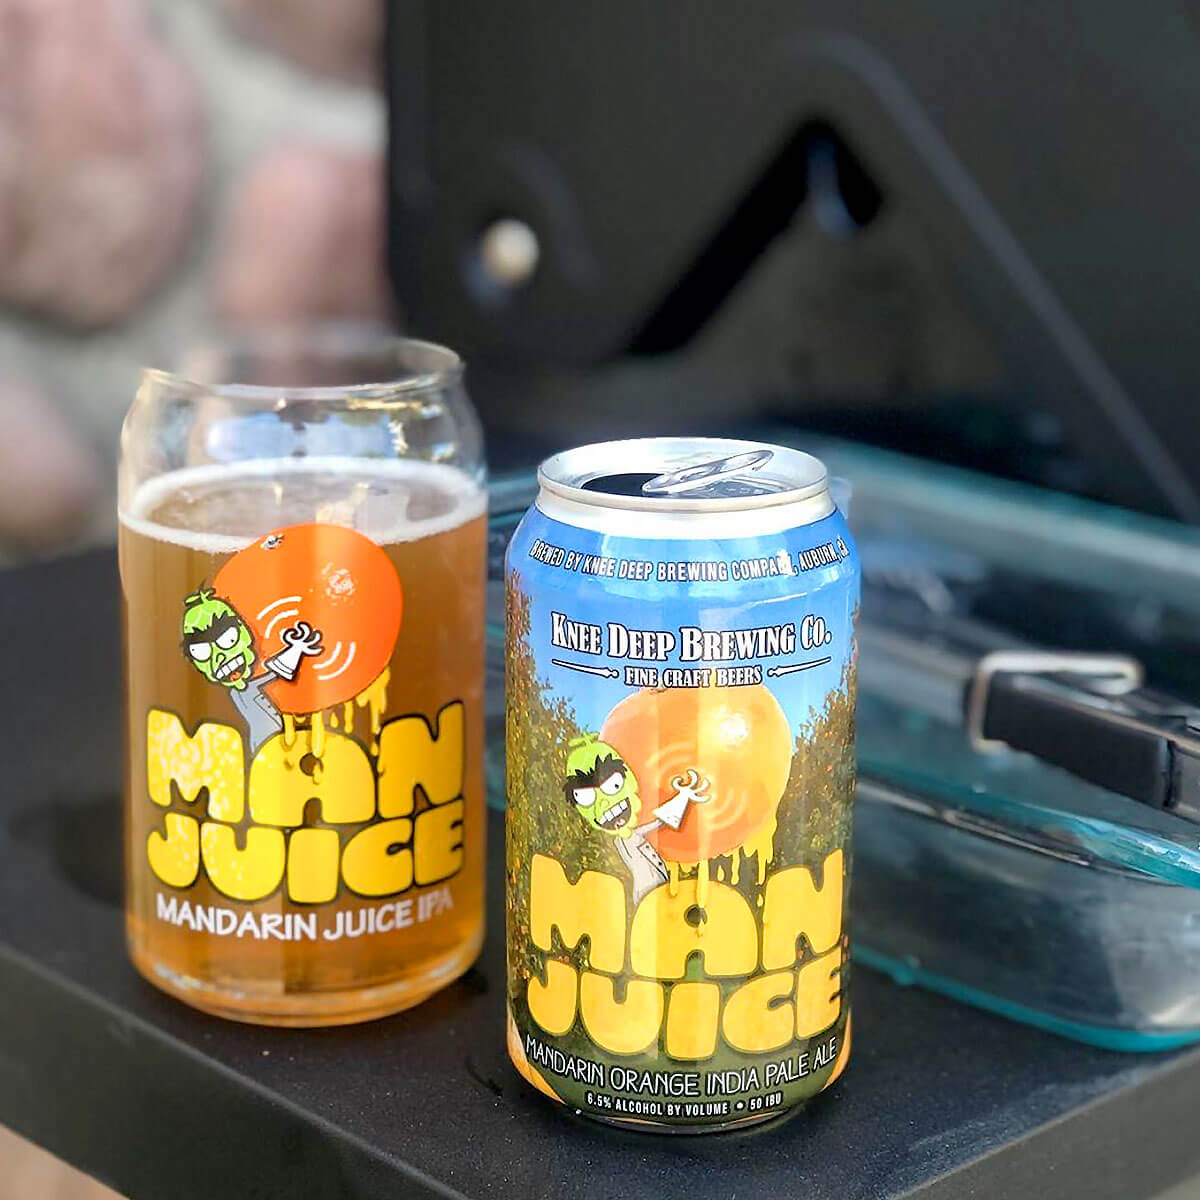 Man Juice is an American IPA that's brewed by Knee Deep Brewing Co. that pairs hoppy citrus with mandarin orange juice.